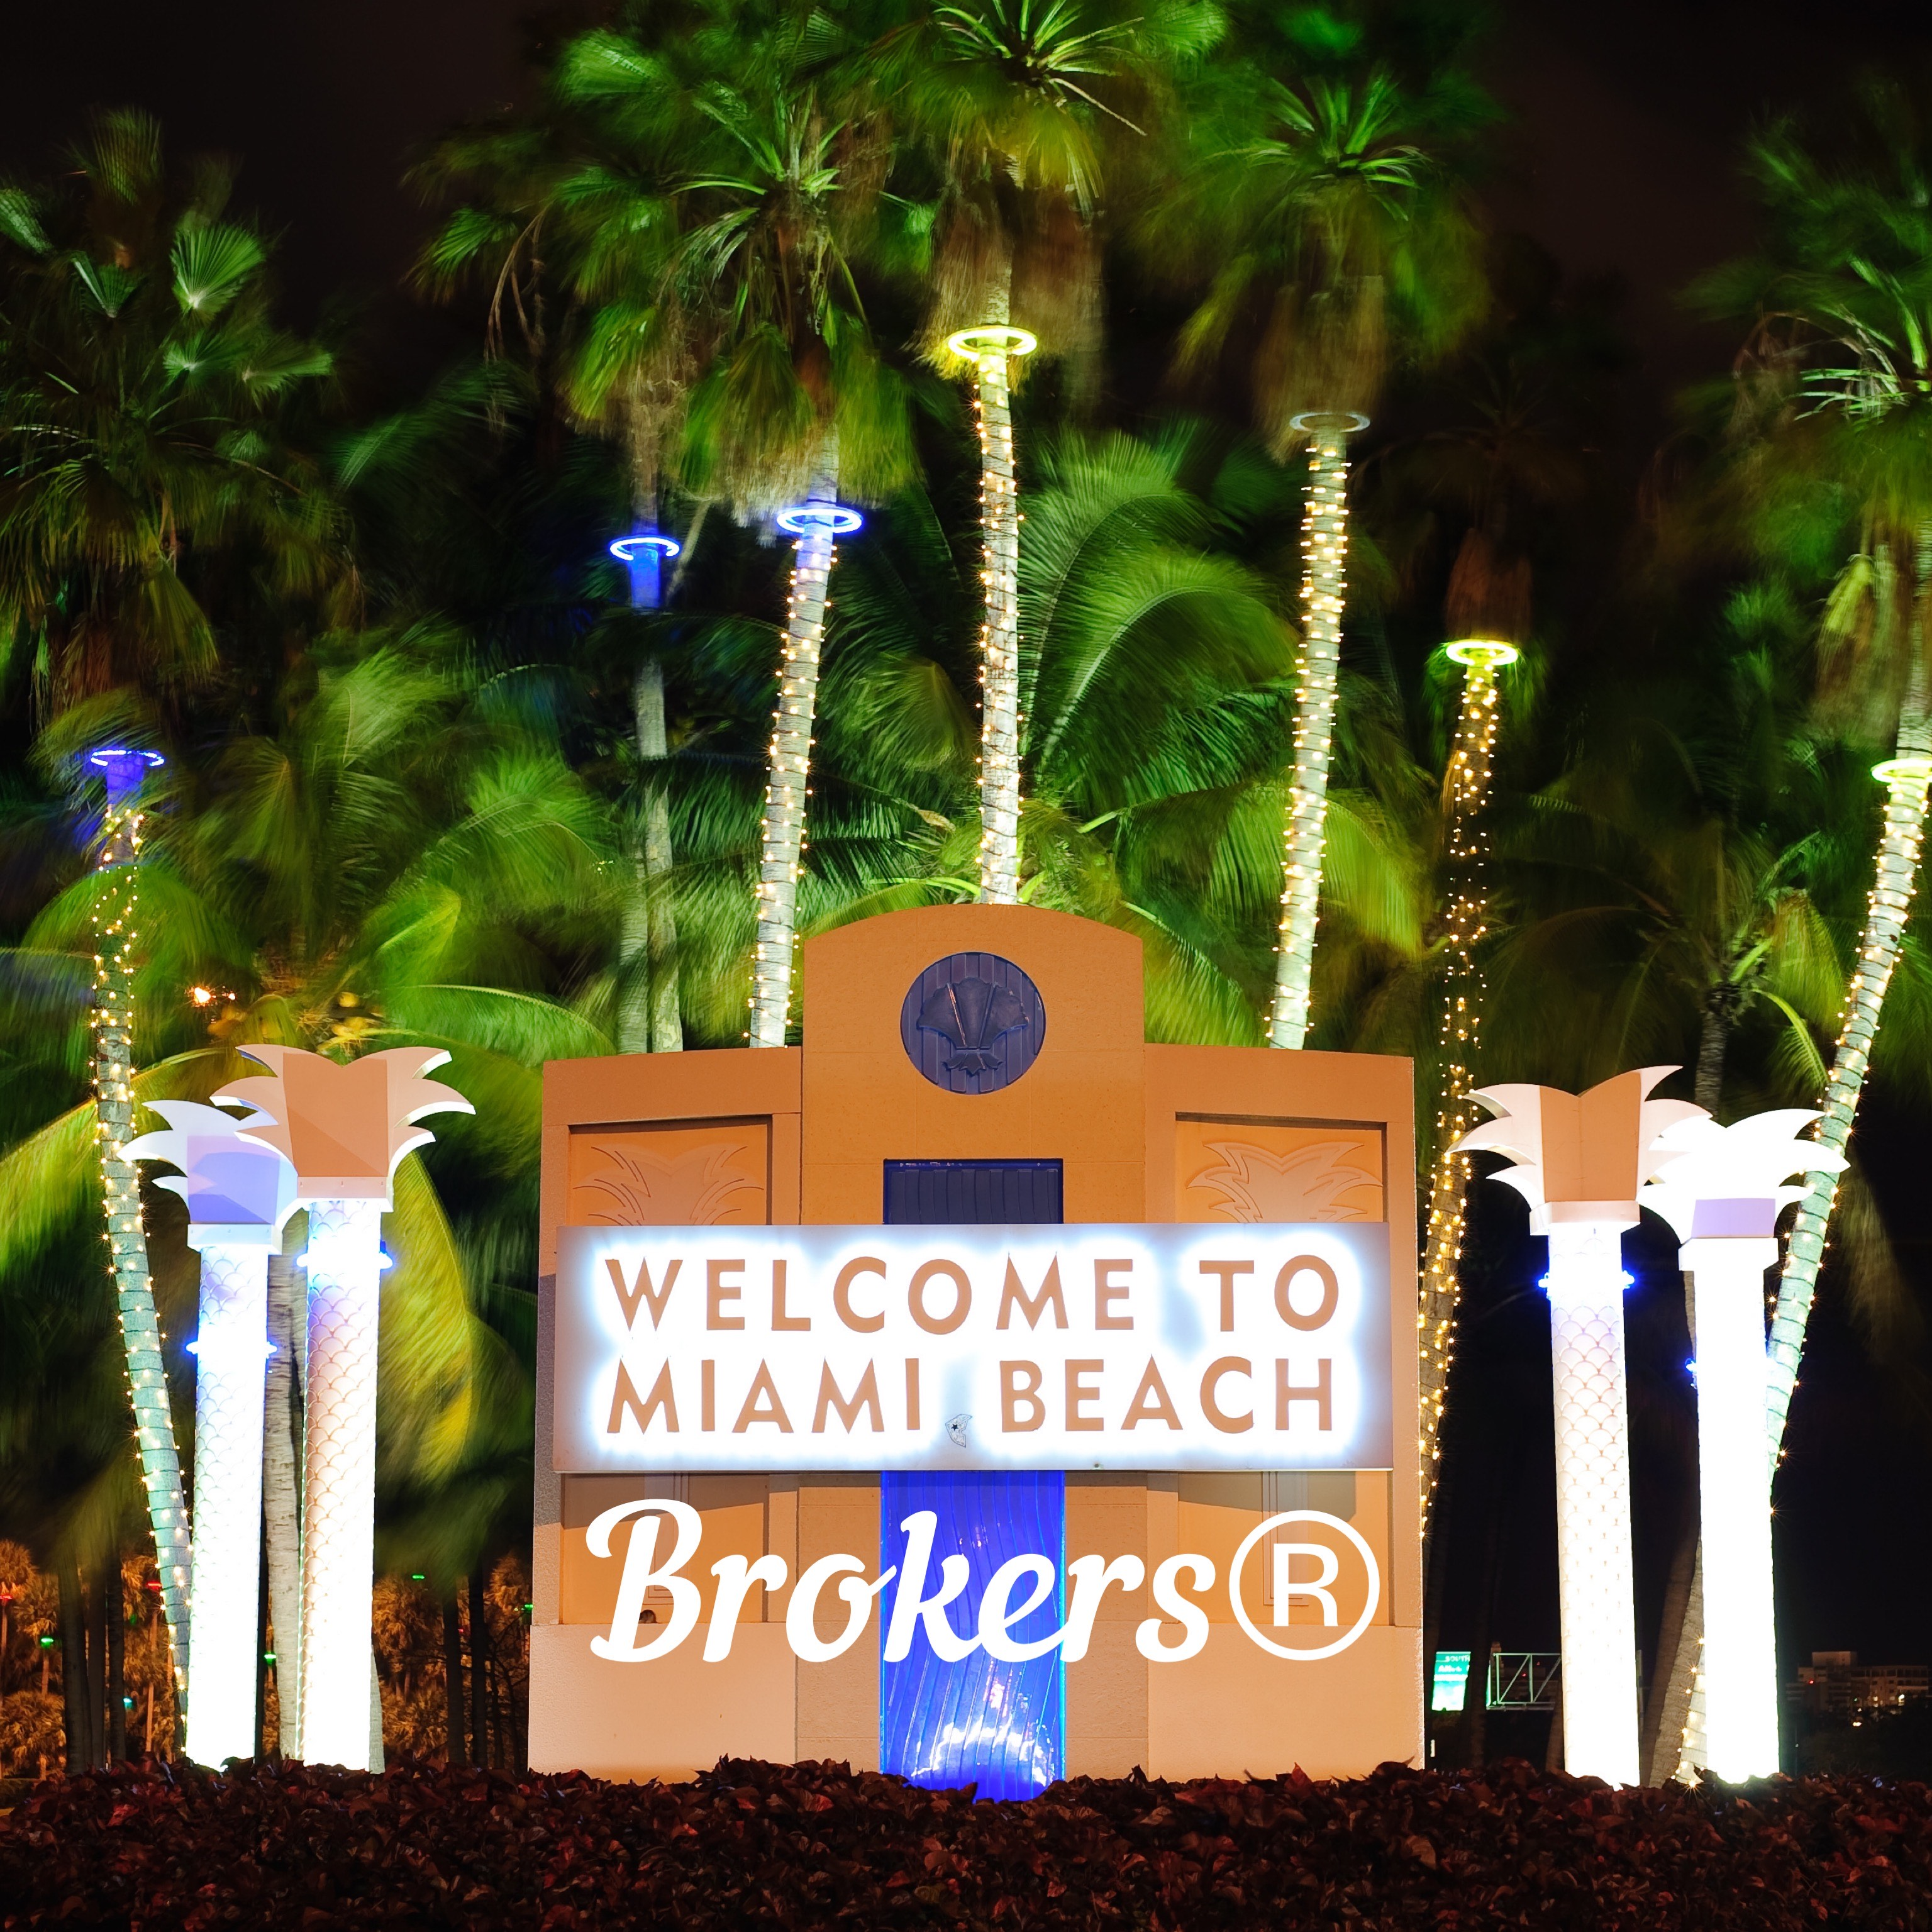 A night time picture of the WELCOME TO MIAMI BEACH sign modified, obviously, to read Welcome to Miami Beach Brokers®.  Miami Beach Brokers® is a registered trademark of Miami Beach Brokers LLC